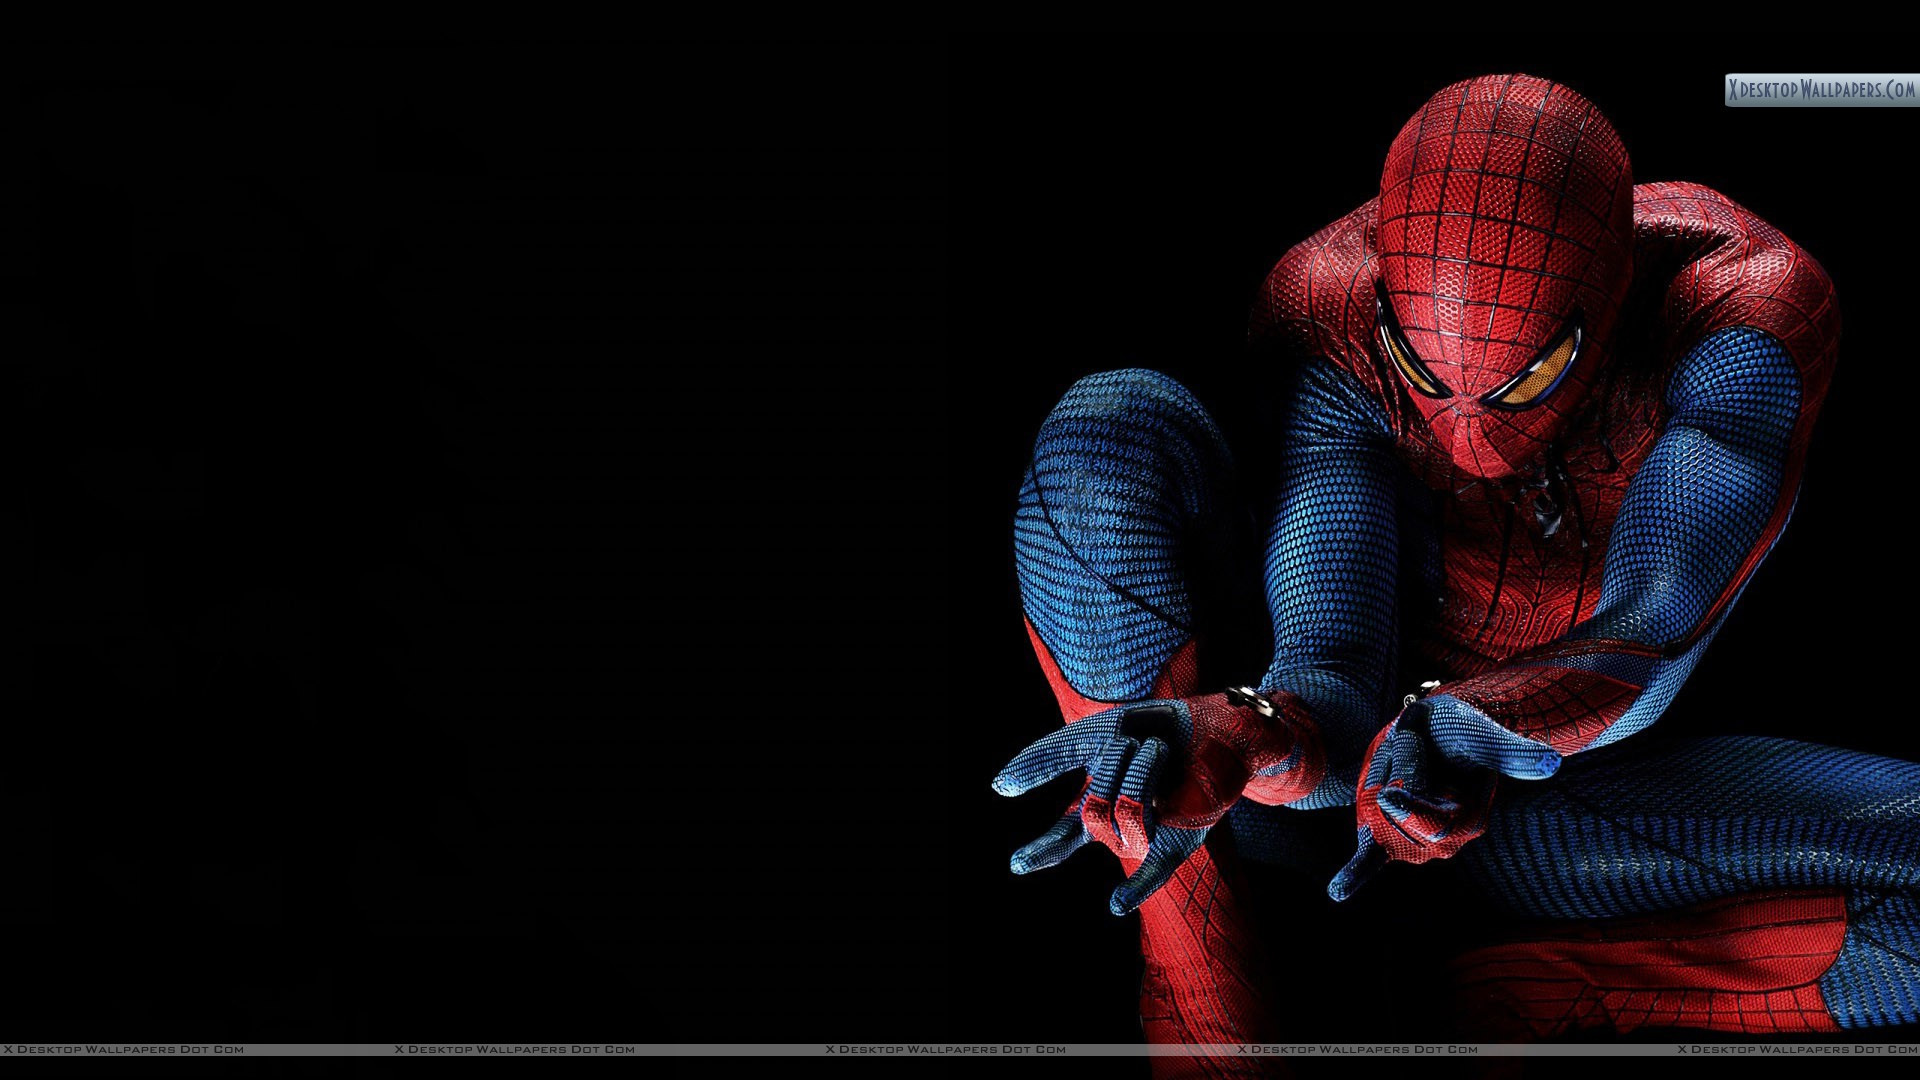 40 Amazing Spiderman Wallpaper HD For PC